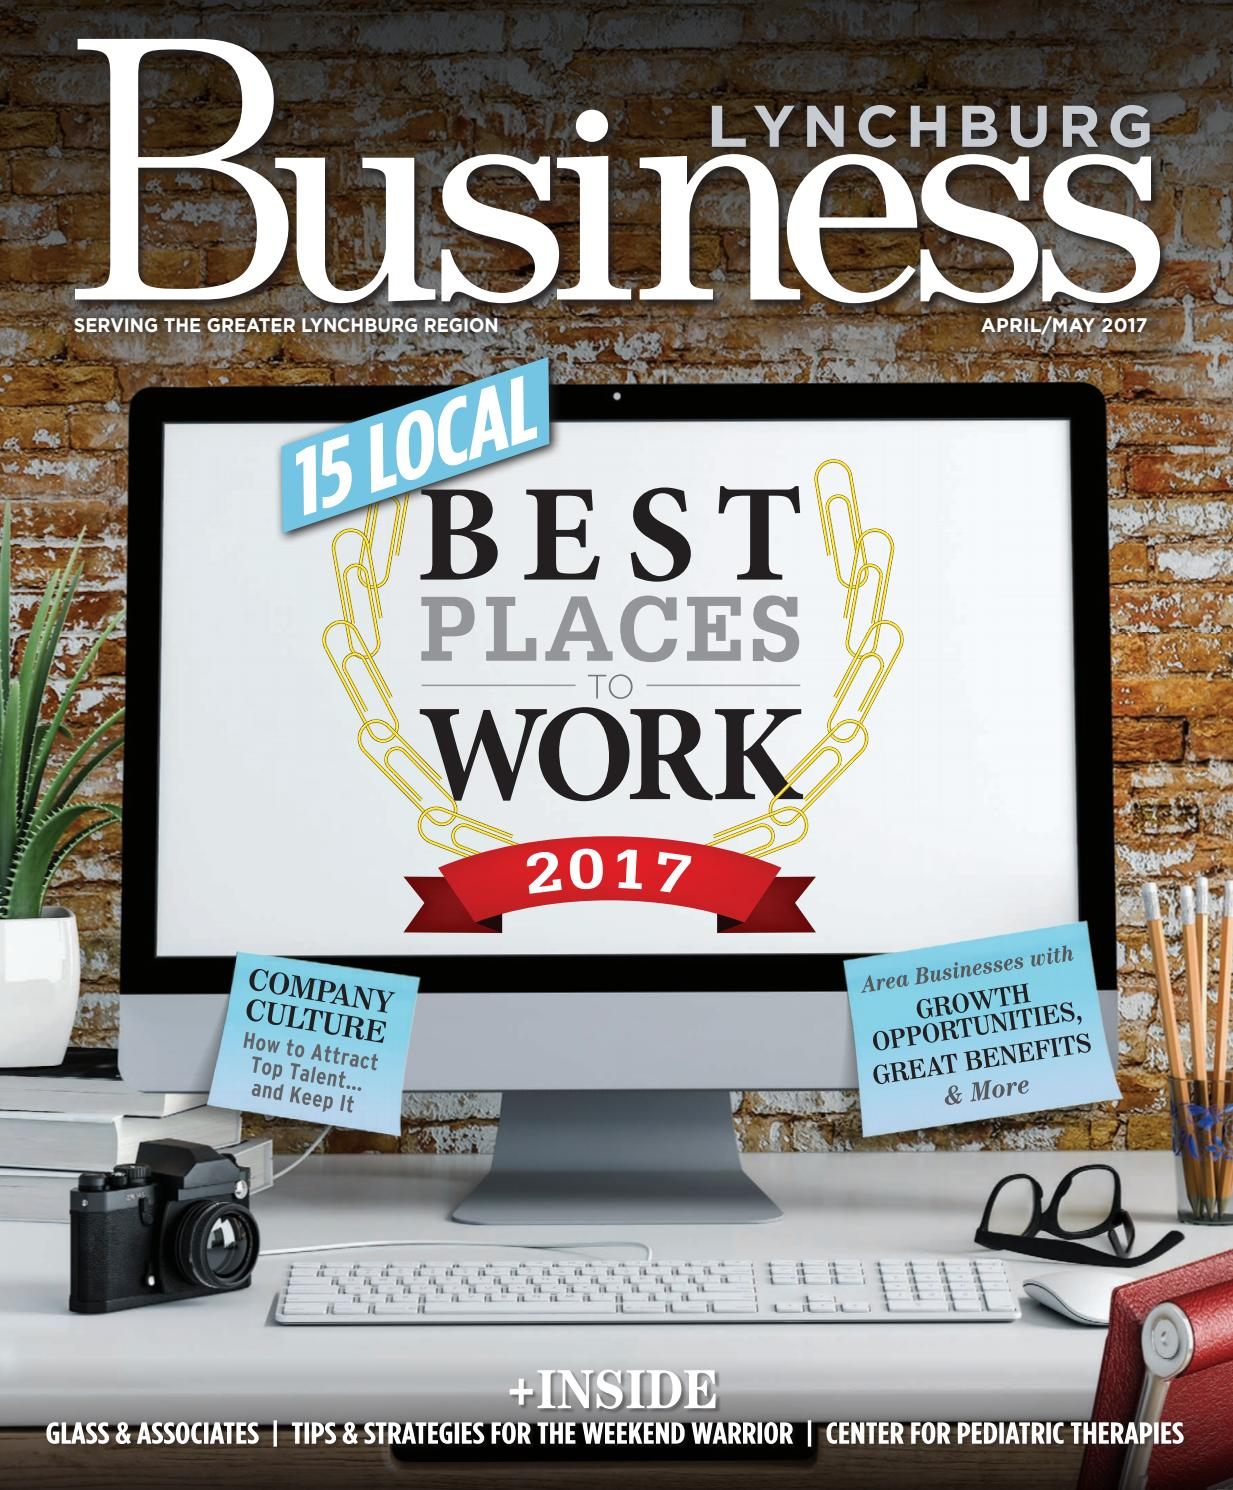 Lynchburg business mag aprilmay 2017 by vistagraphics issuu fandeluxe Gallery